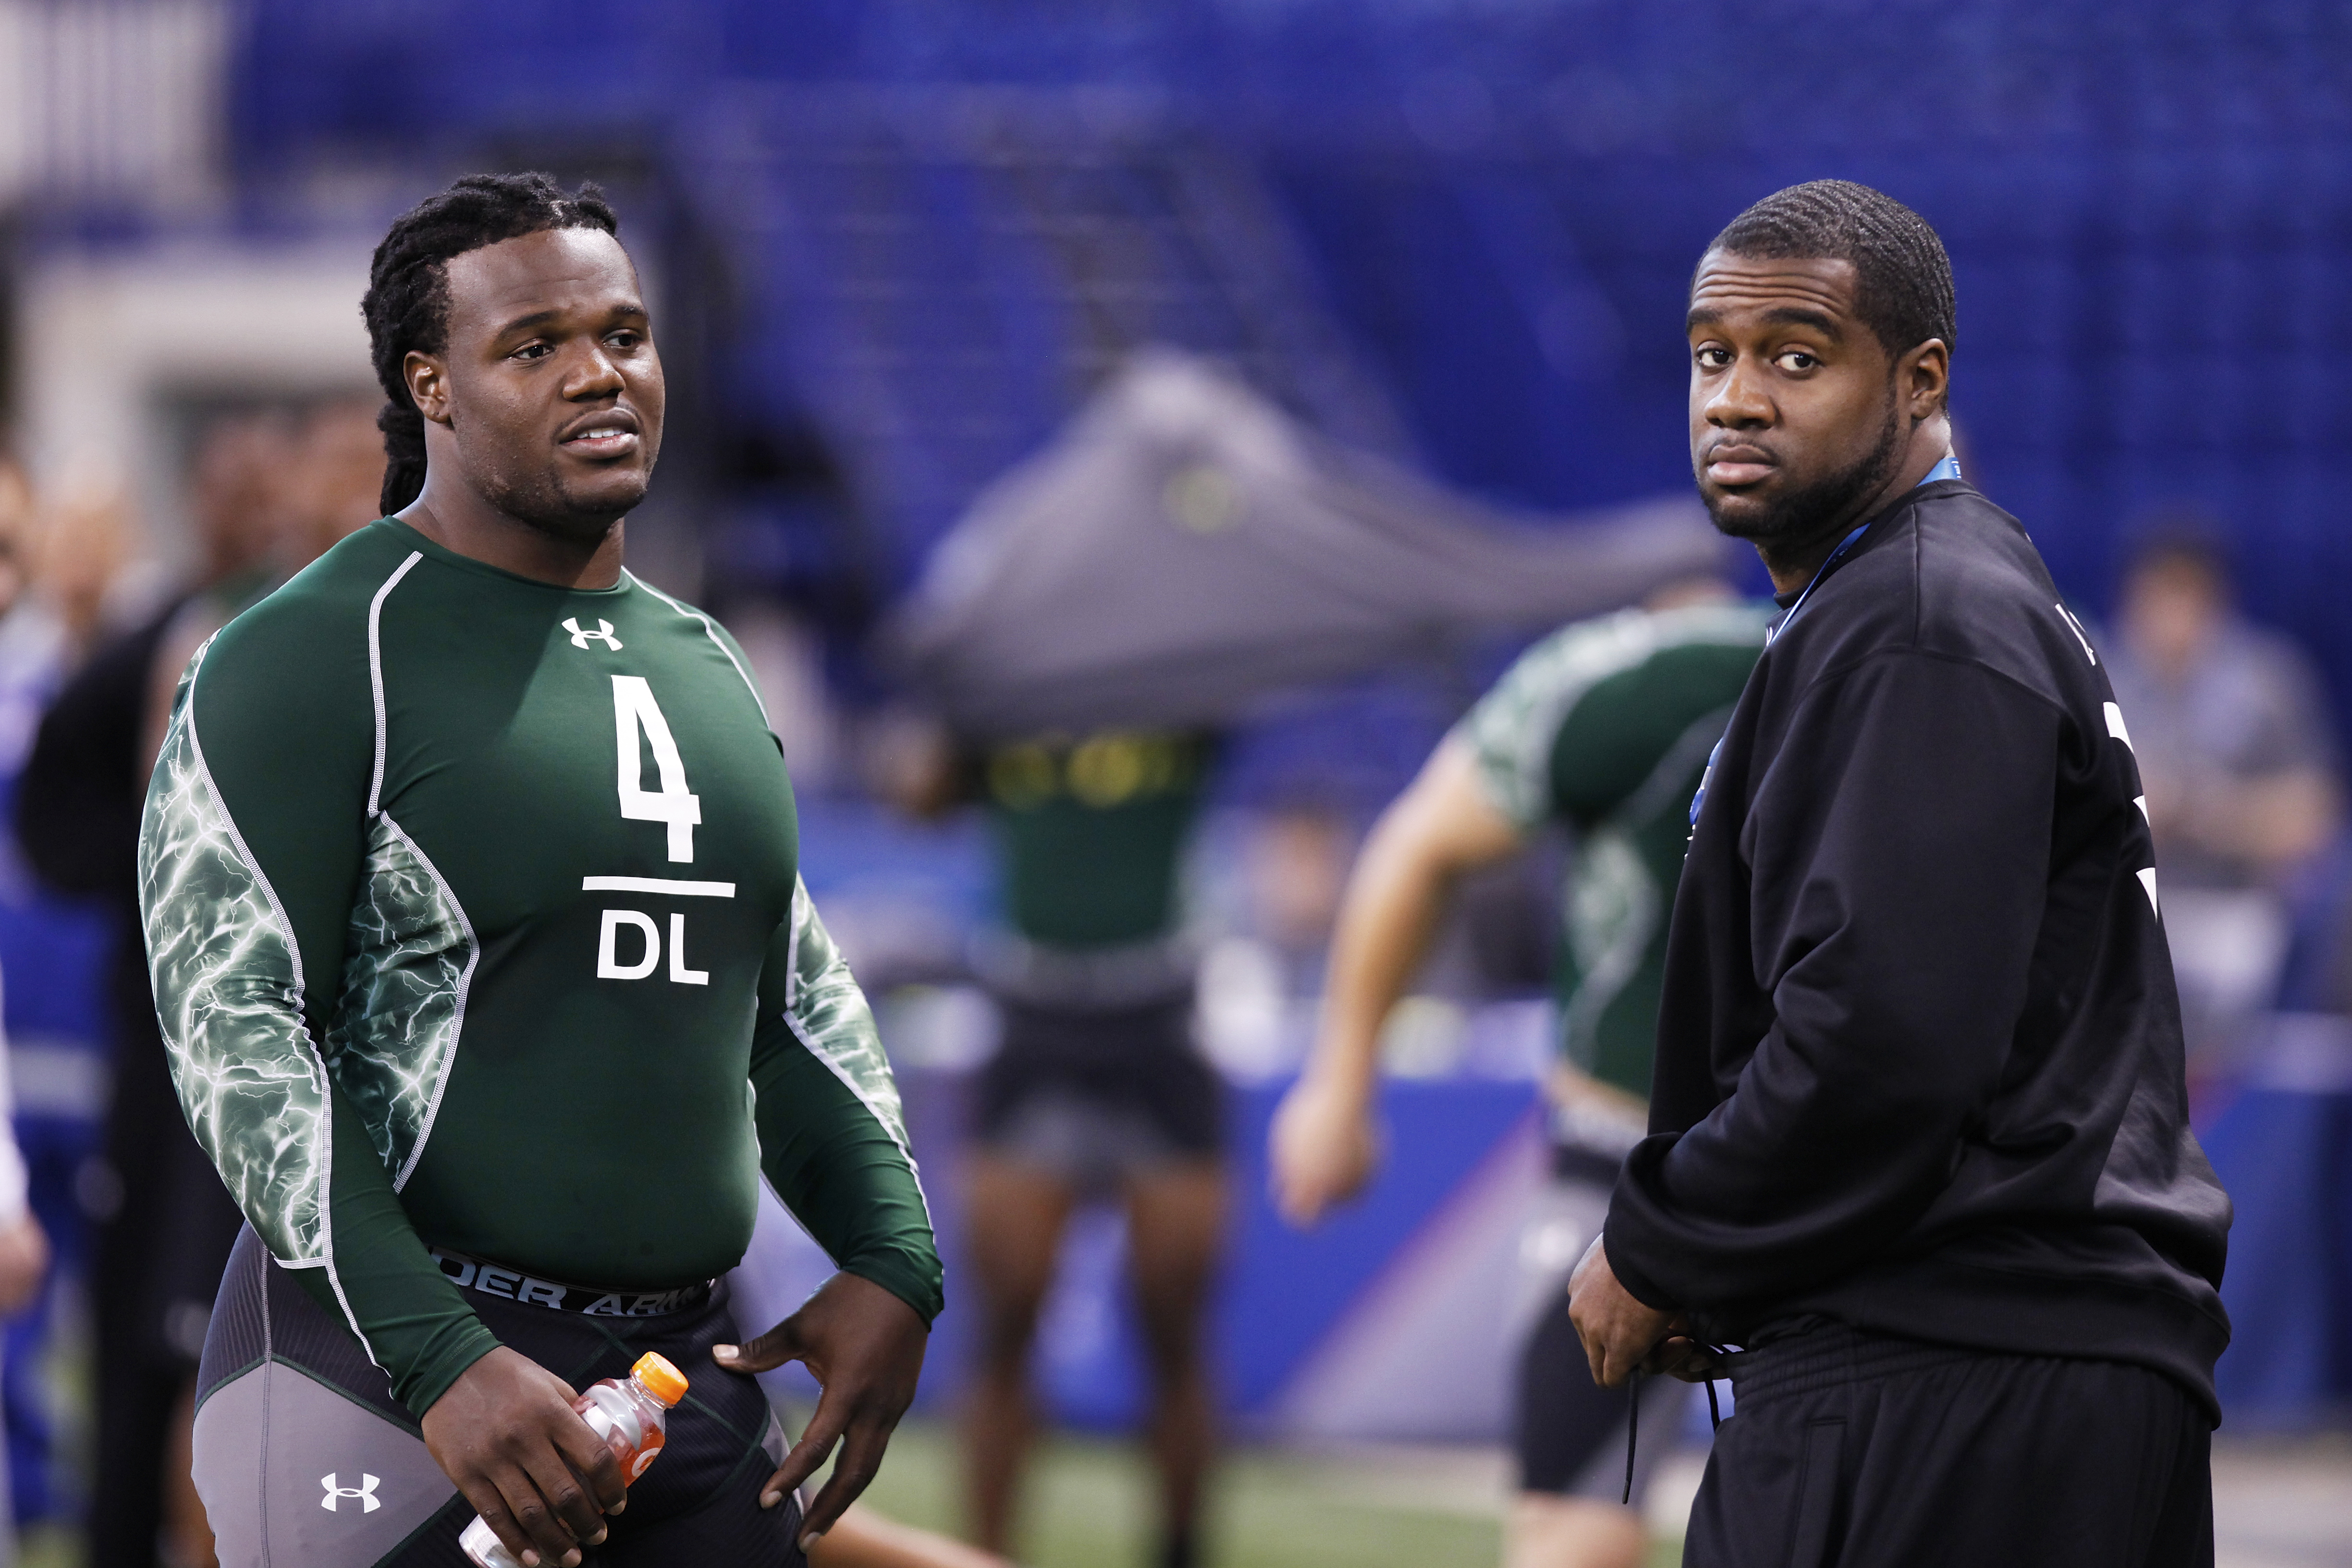 INDIANAPOLIS, IN - FEBRUARY 28: Former North Carolina teammates Marvin Austin (L) and Bruce Carter look on during the 2011 NFL Scouting Combine at Lucas Oil Stadium on February 28, 2011 in Indianapolis, Indiana. (Photo by Joe Robbins/Getty Images)